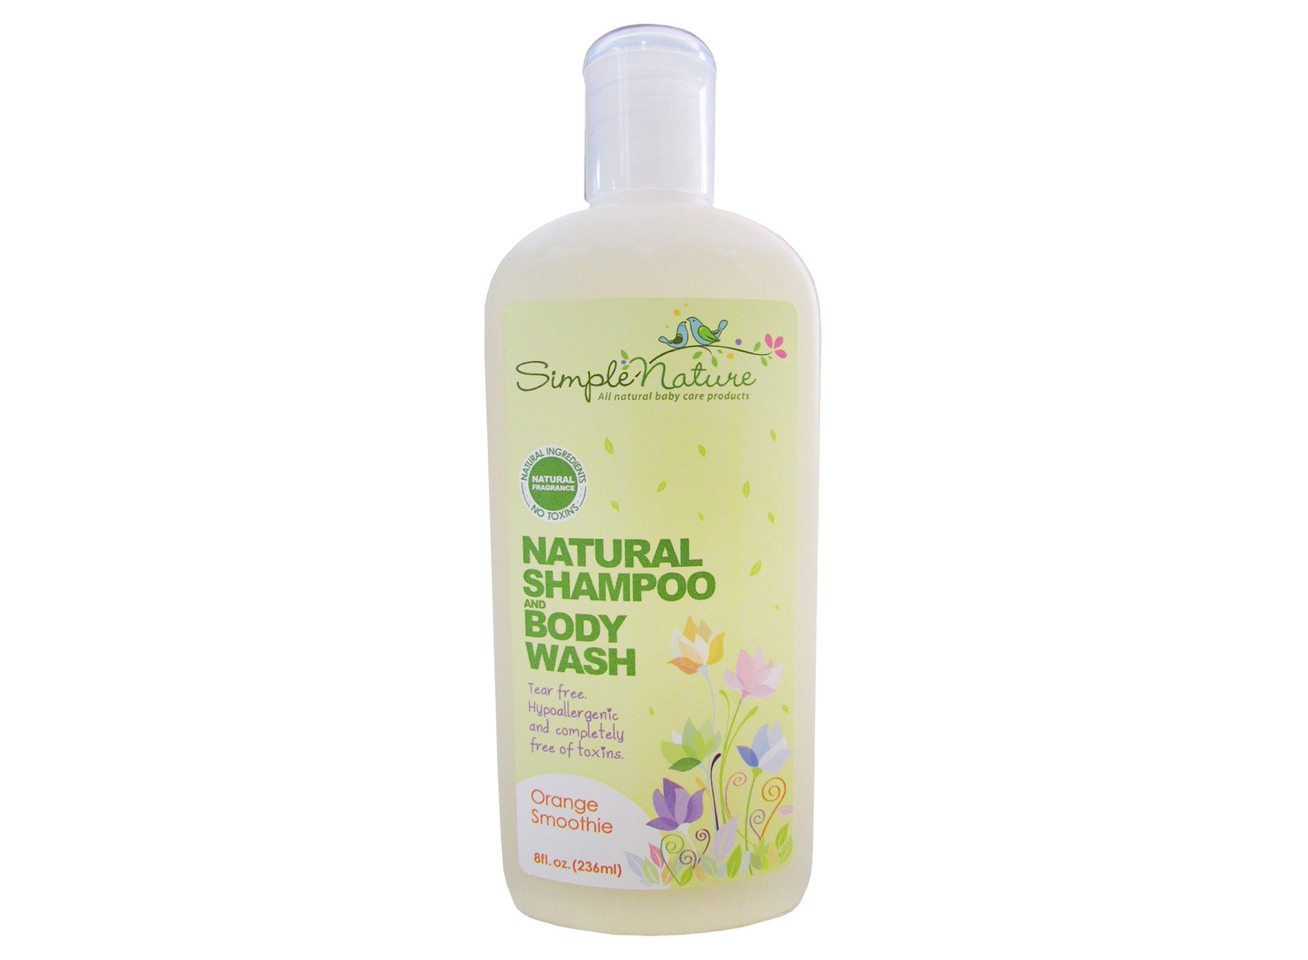 I like to use natural shampoo, but I'll make a specific tip on shampoo brands later. So now that your hair is brushed, hop into the shower and wet your hair fully. Apply a quarter-sized dollop of shampoo (more for longer hair), and gently rub from the roots to the tips.